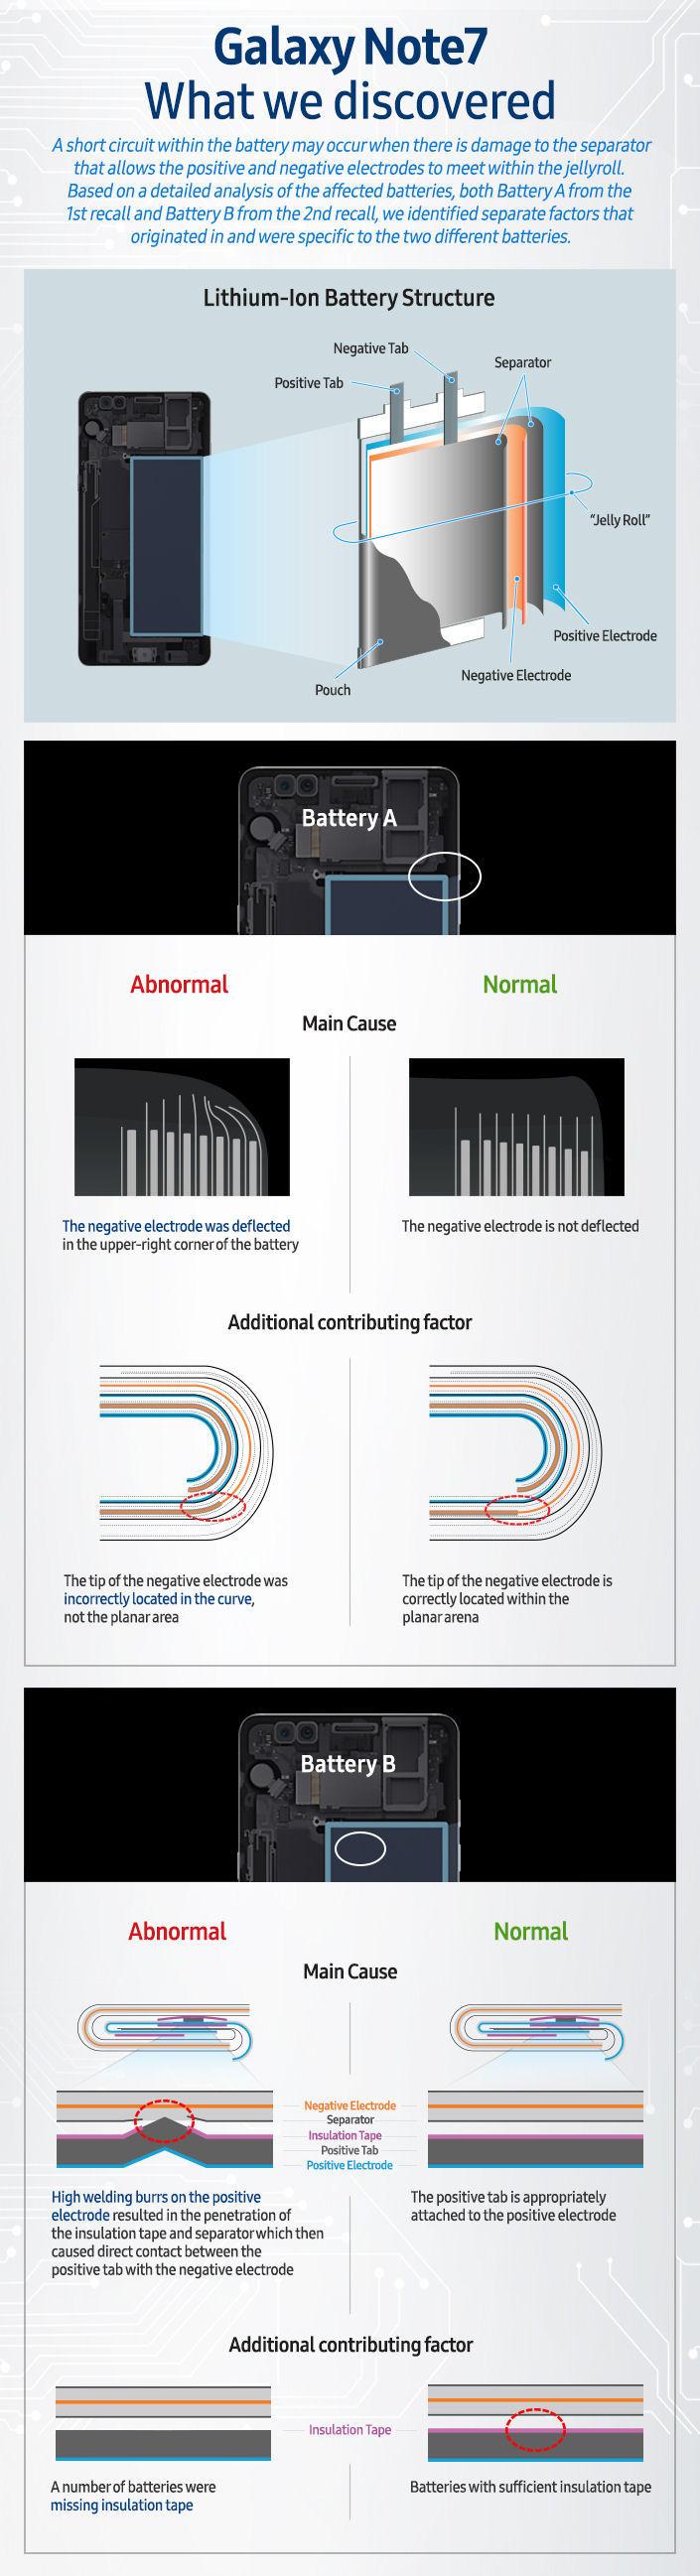 Galaxy Note7 infographic